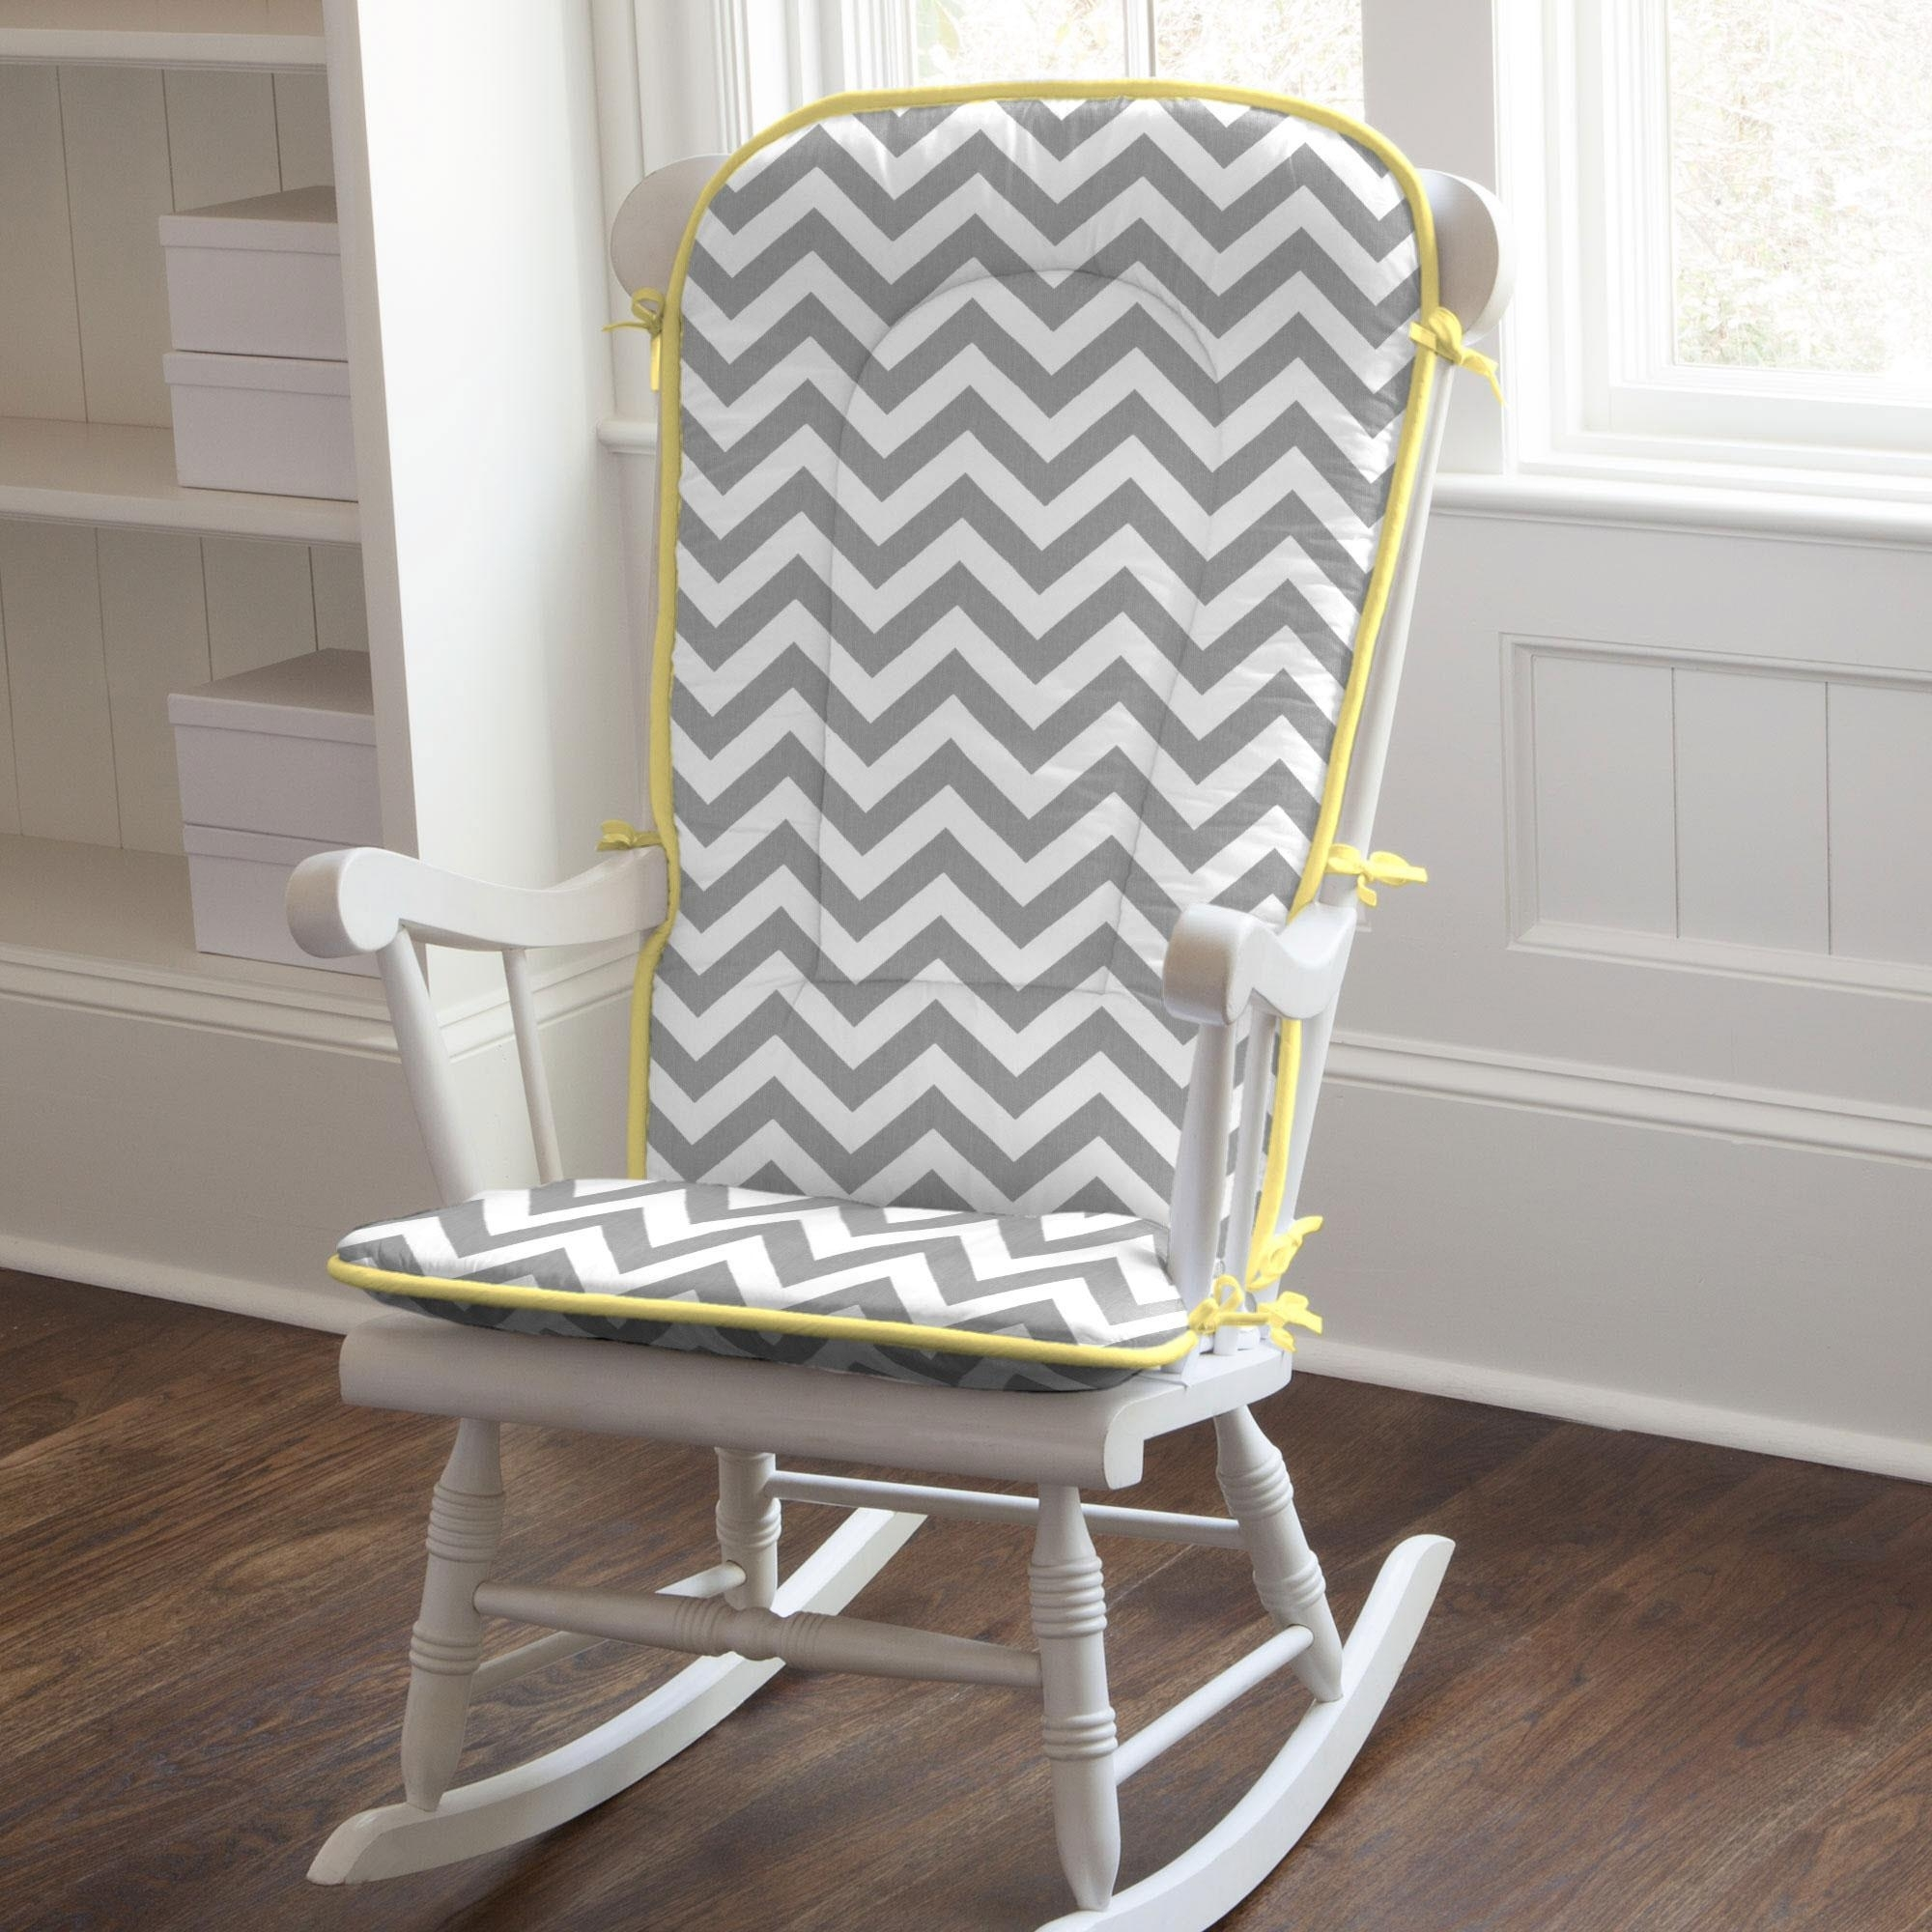 Inspiration about Rocking Chair Pads | Cushions For Rocking Chairs | Carousel Designs Intended For Yellow Outdoor Rocking Chairs (#14 of 15)